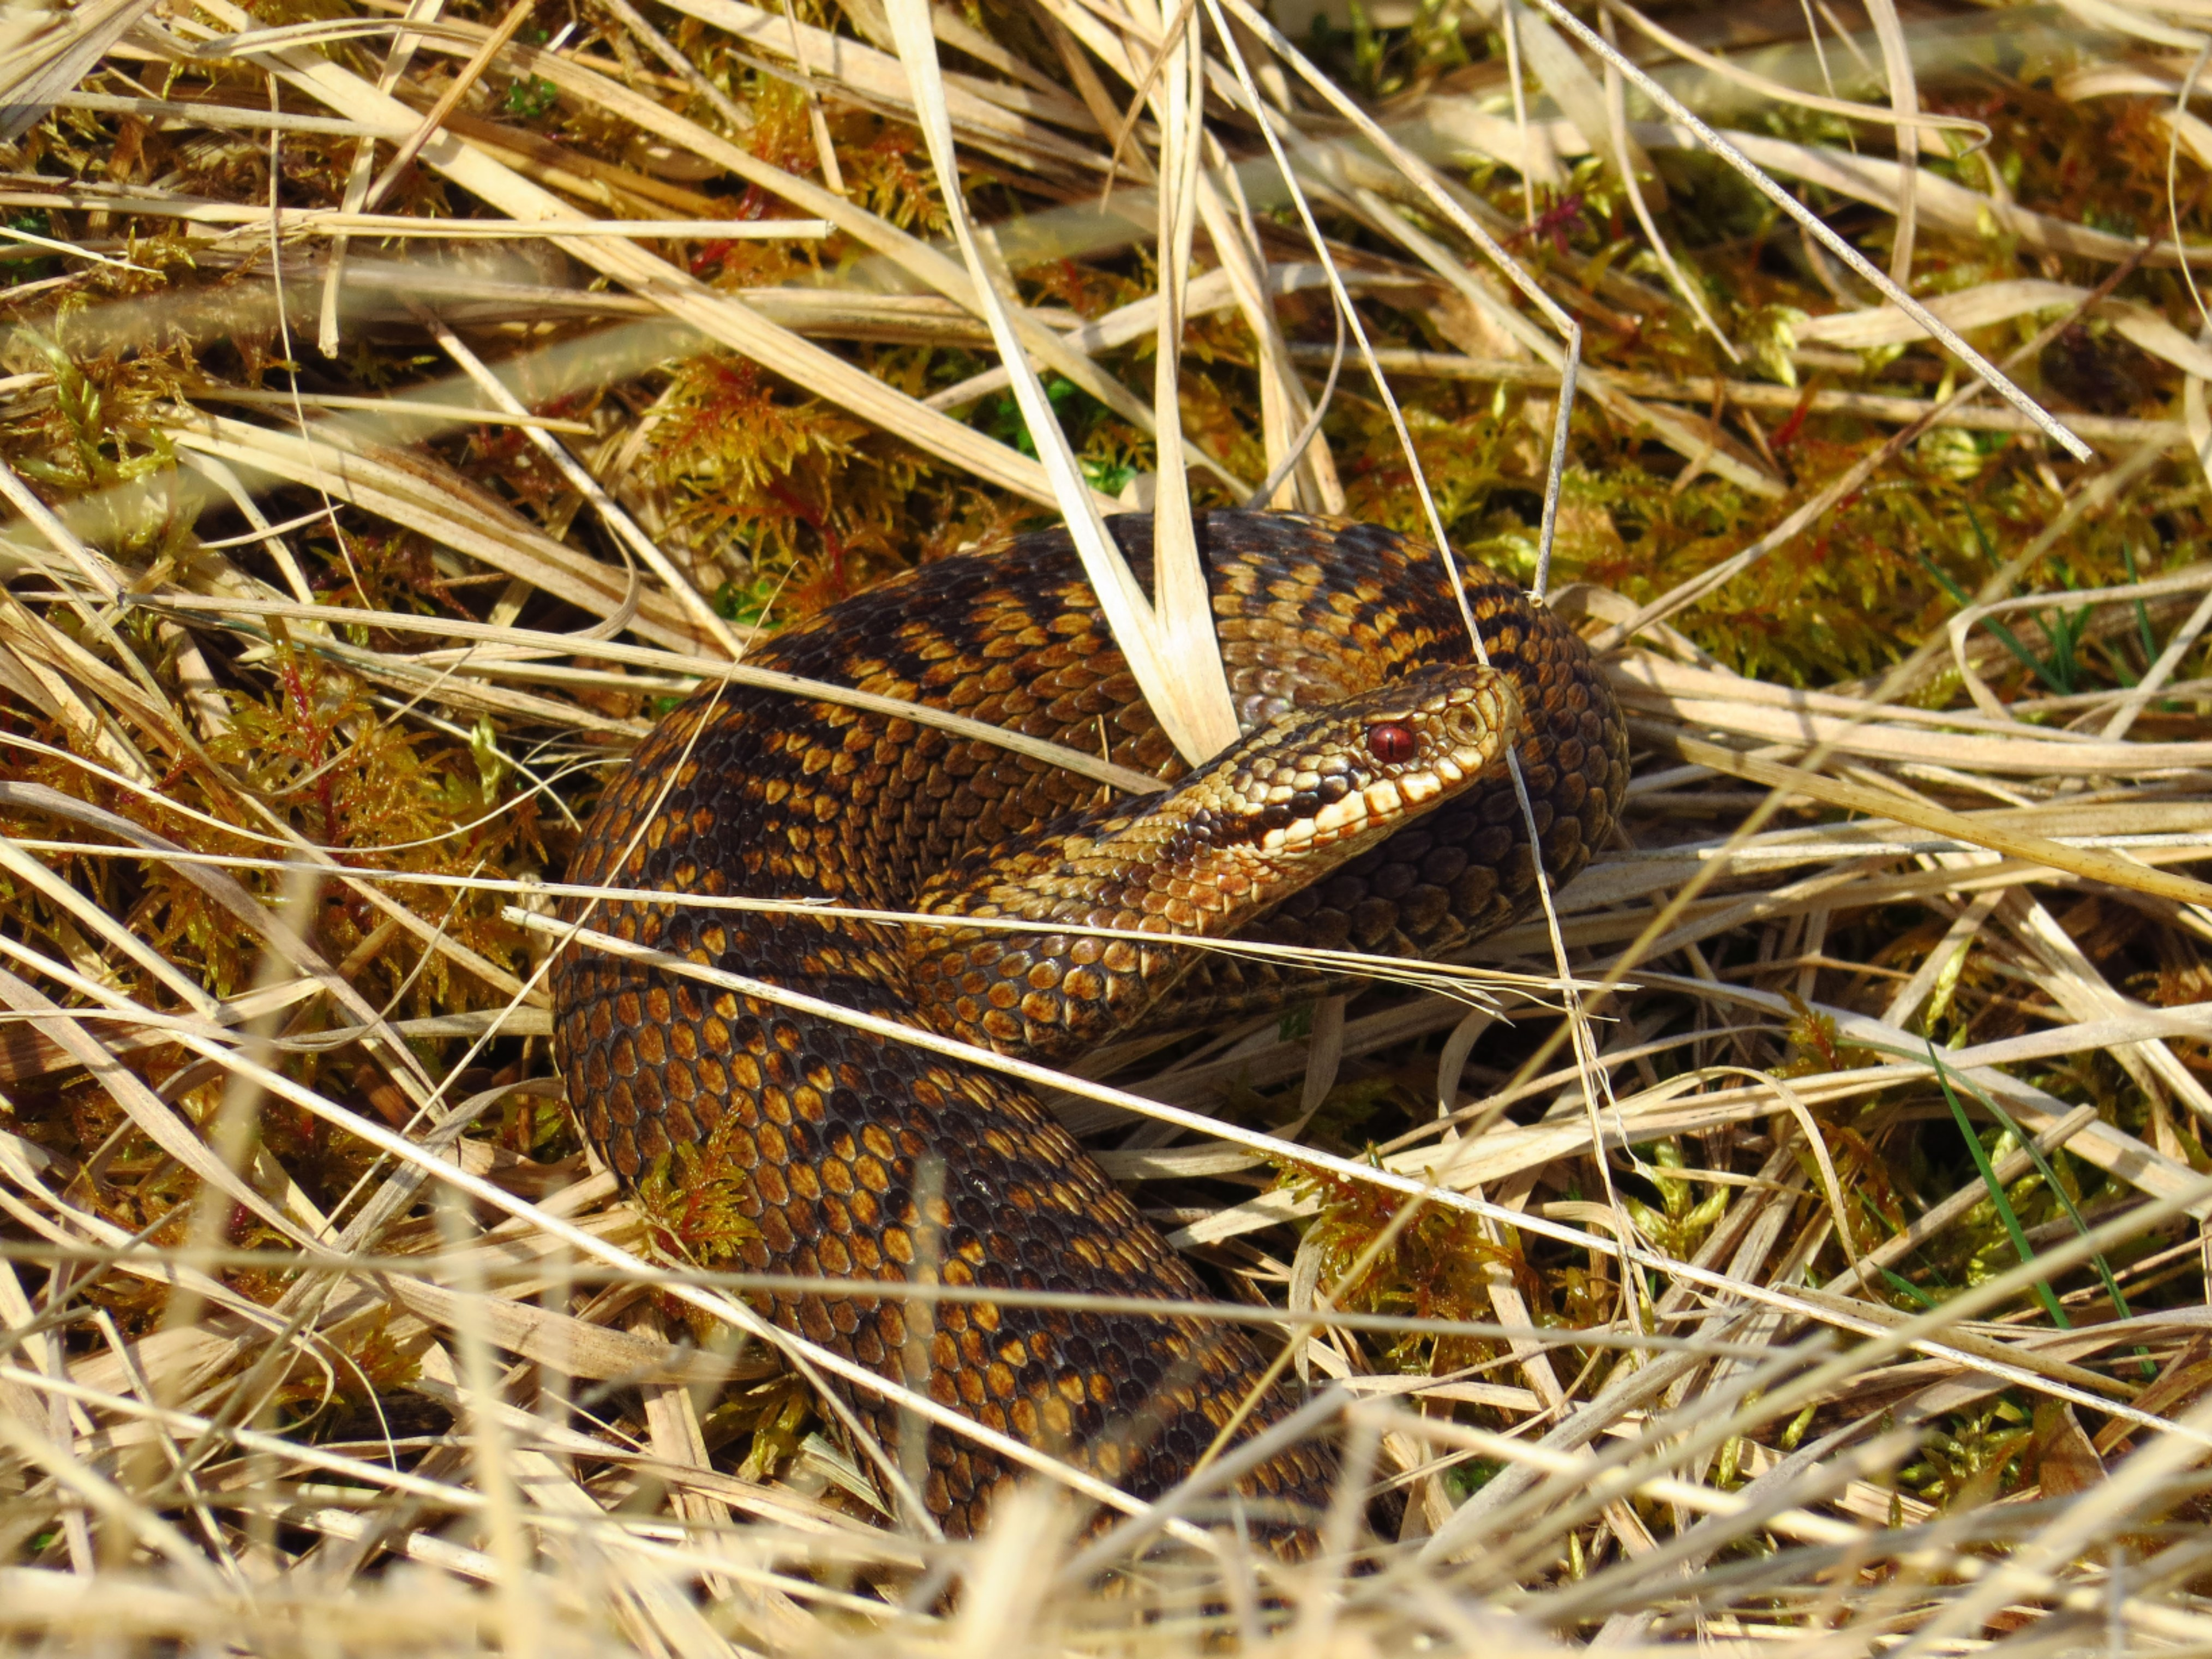 15th May - Make The Adder Count Survey